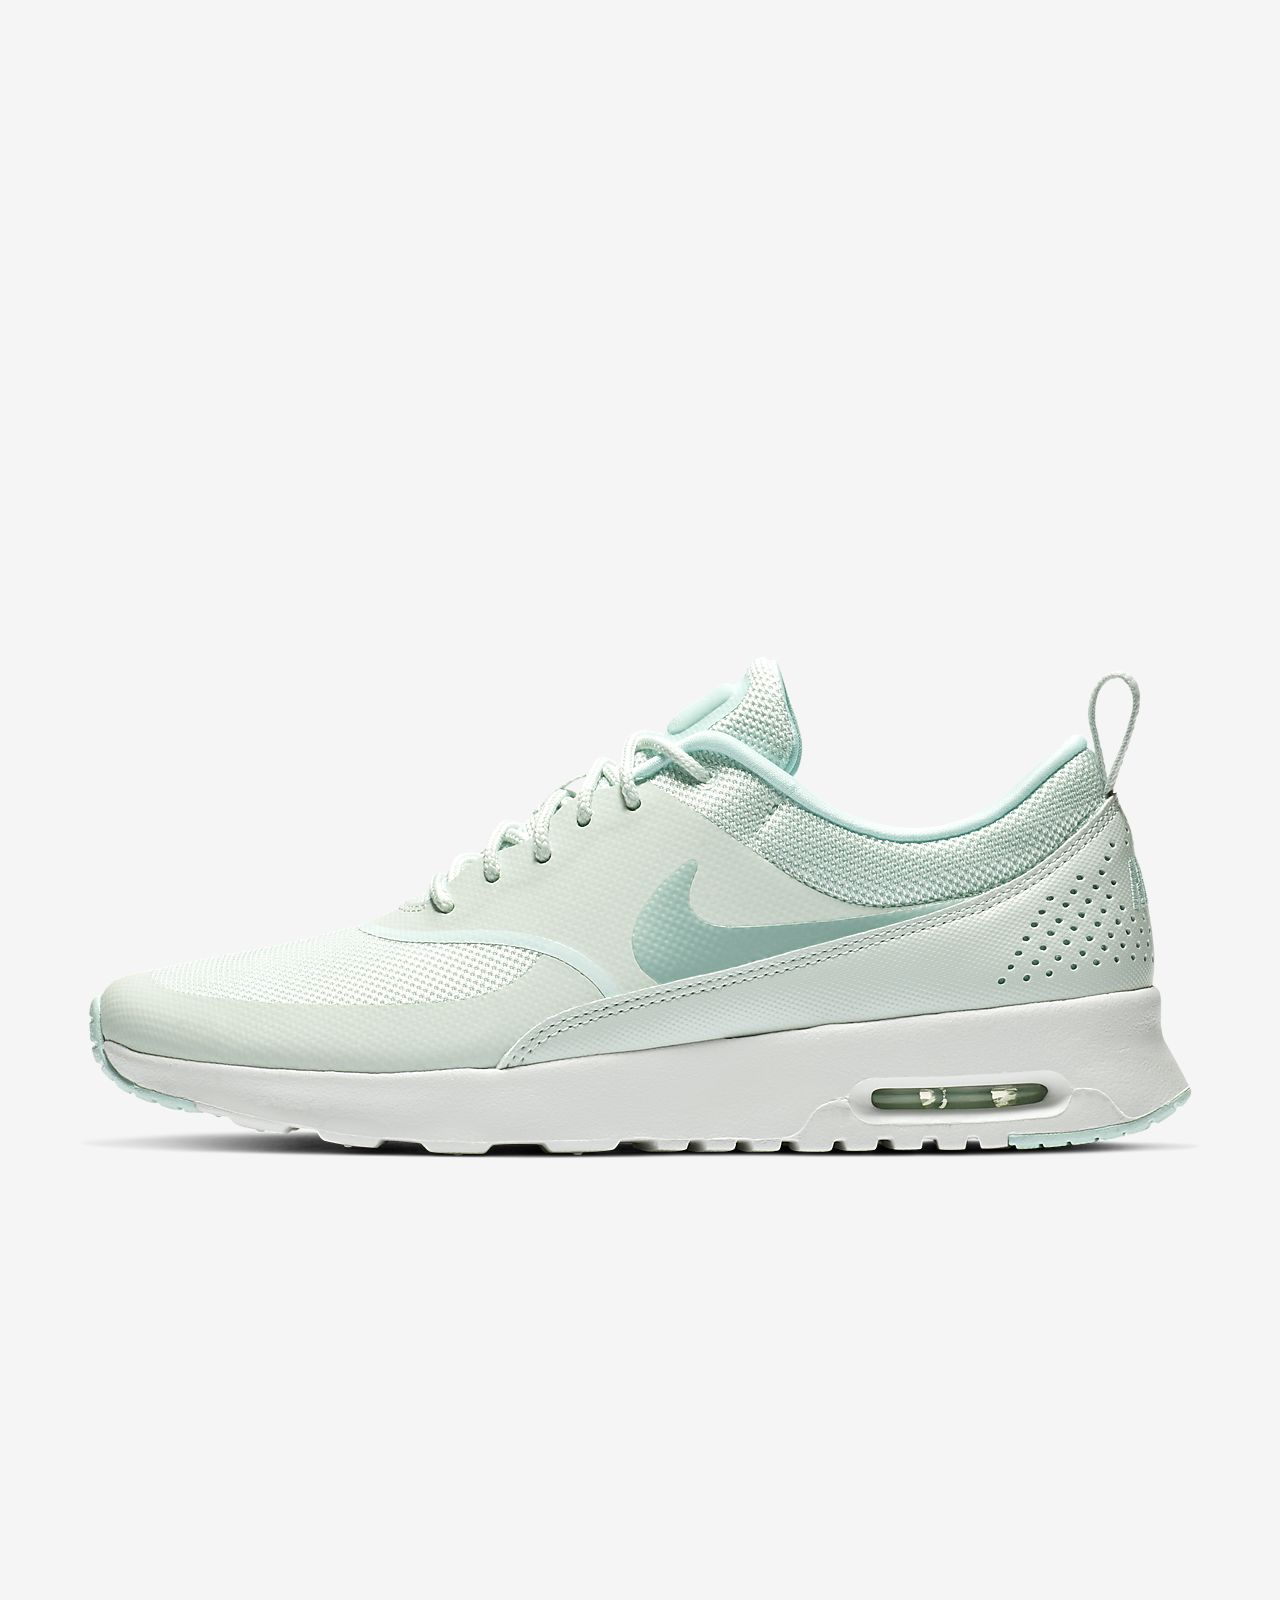 reputable site 1ae16 9d6c2 ... Nike Air Max Thea Women s Shoe